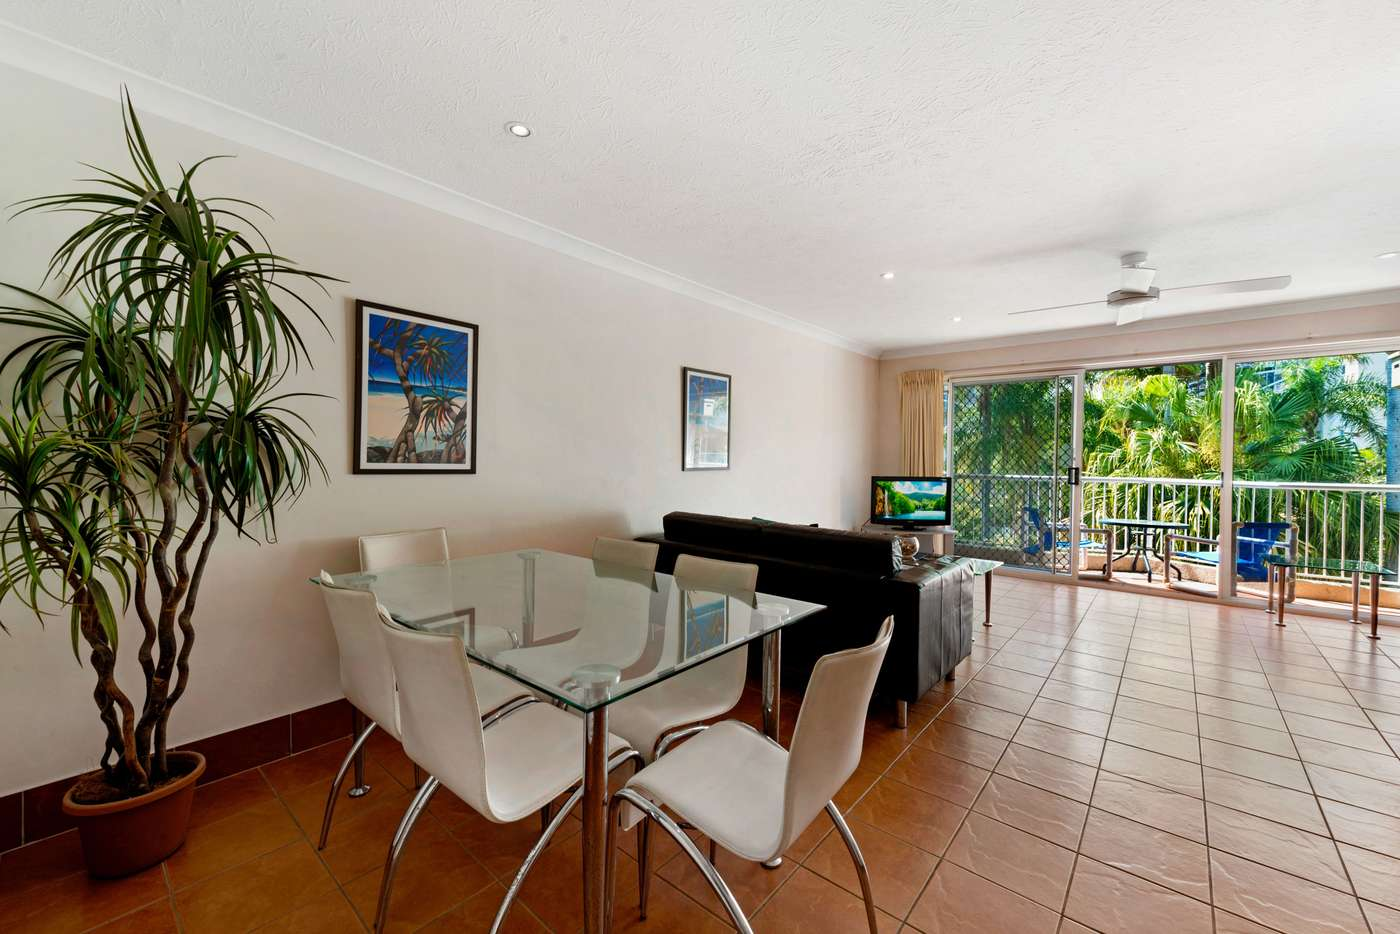 Sixth view of Homely apartment listing, 23 Wharf Road, Surfers Paradise QLD 4217